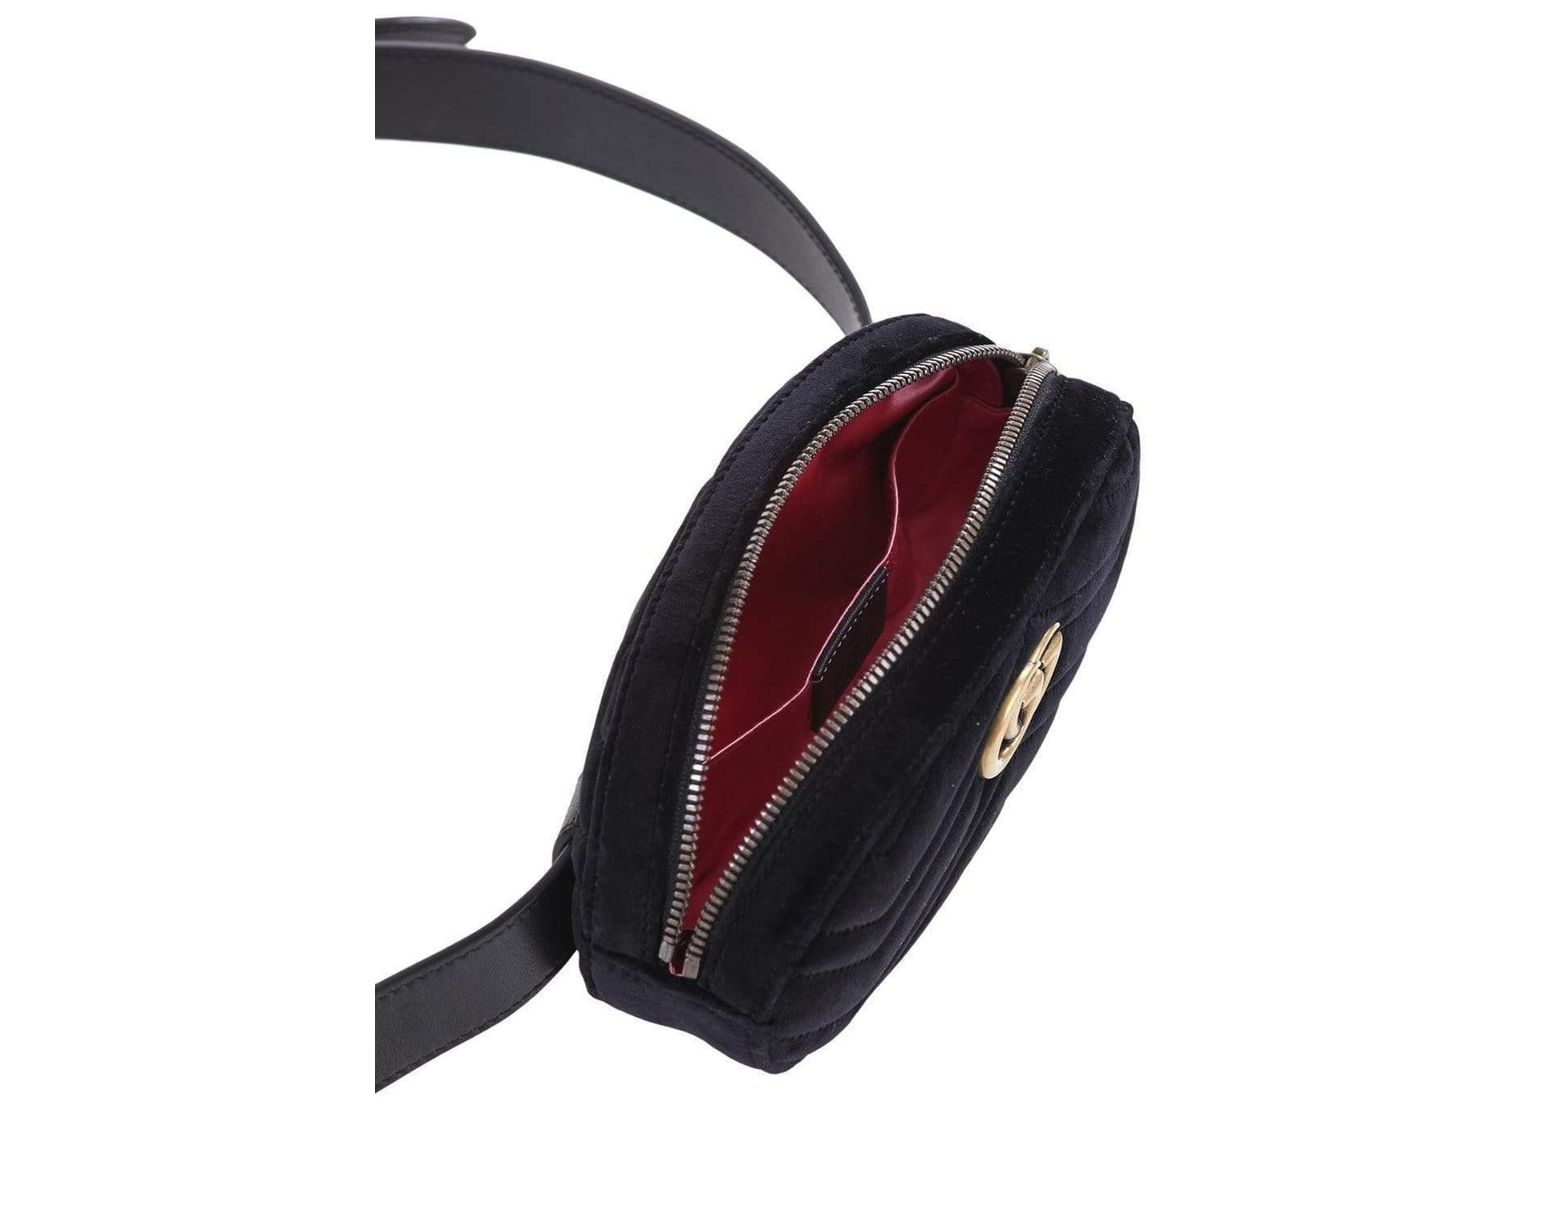 285bc7bdc Gucci Velvet Marmont Belt Bag With Chevron Pattern in Black - Save 28% -  Lyst